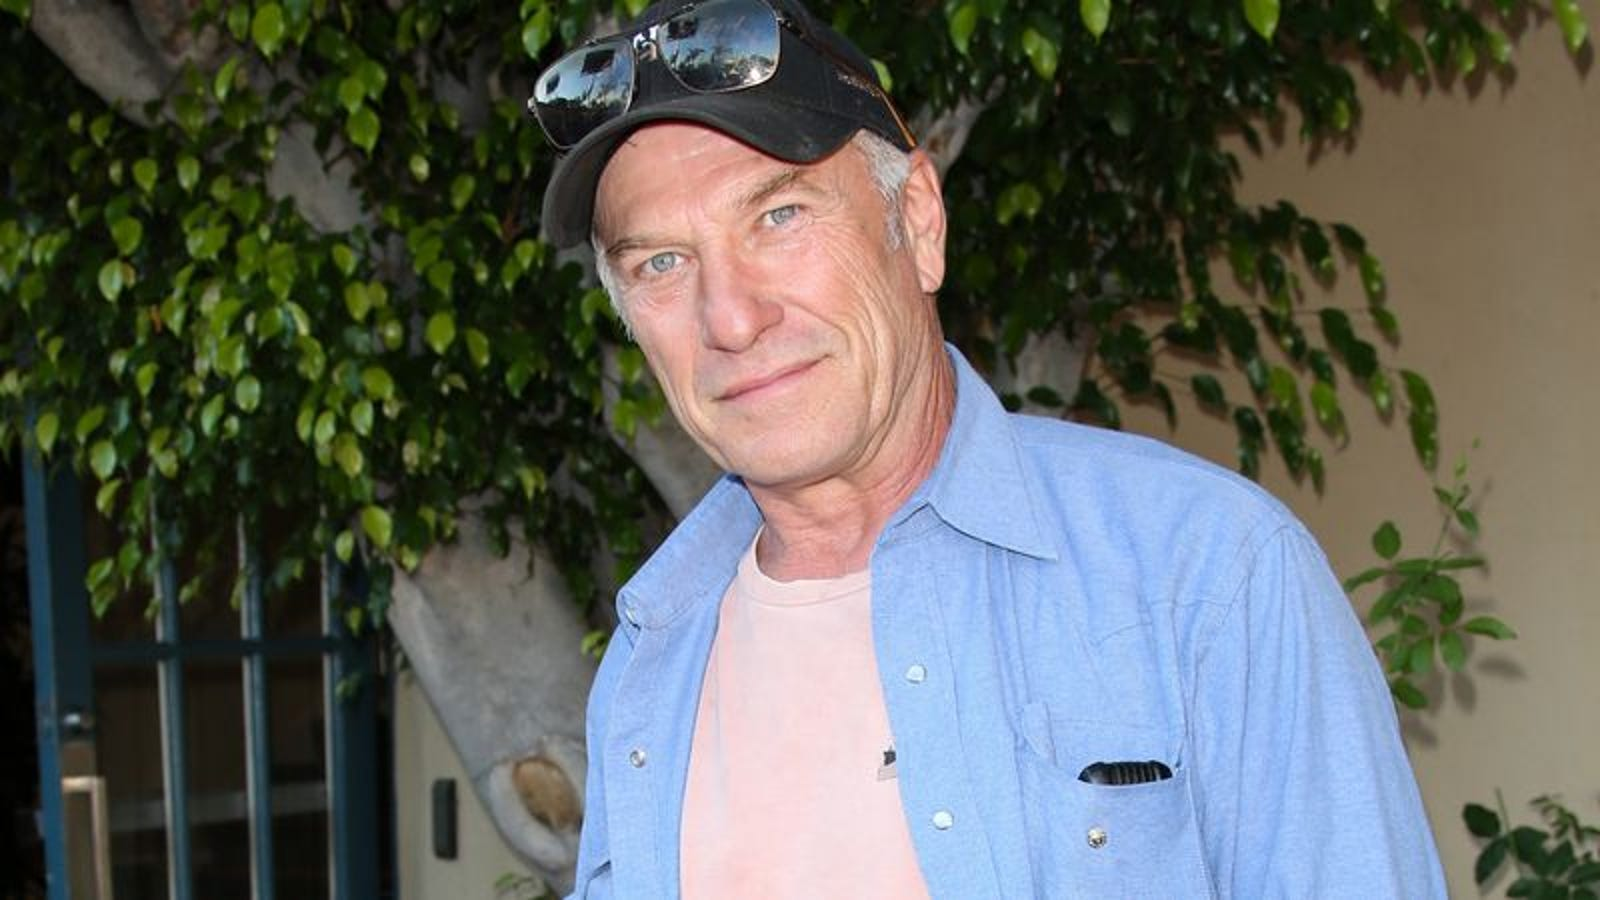 Ted Levine's going to Jurassic World 2